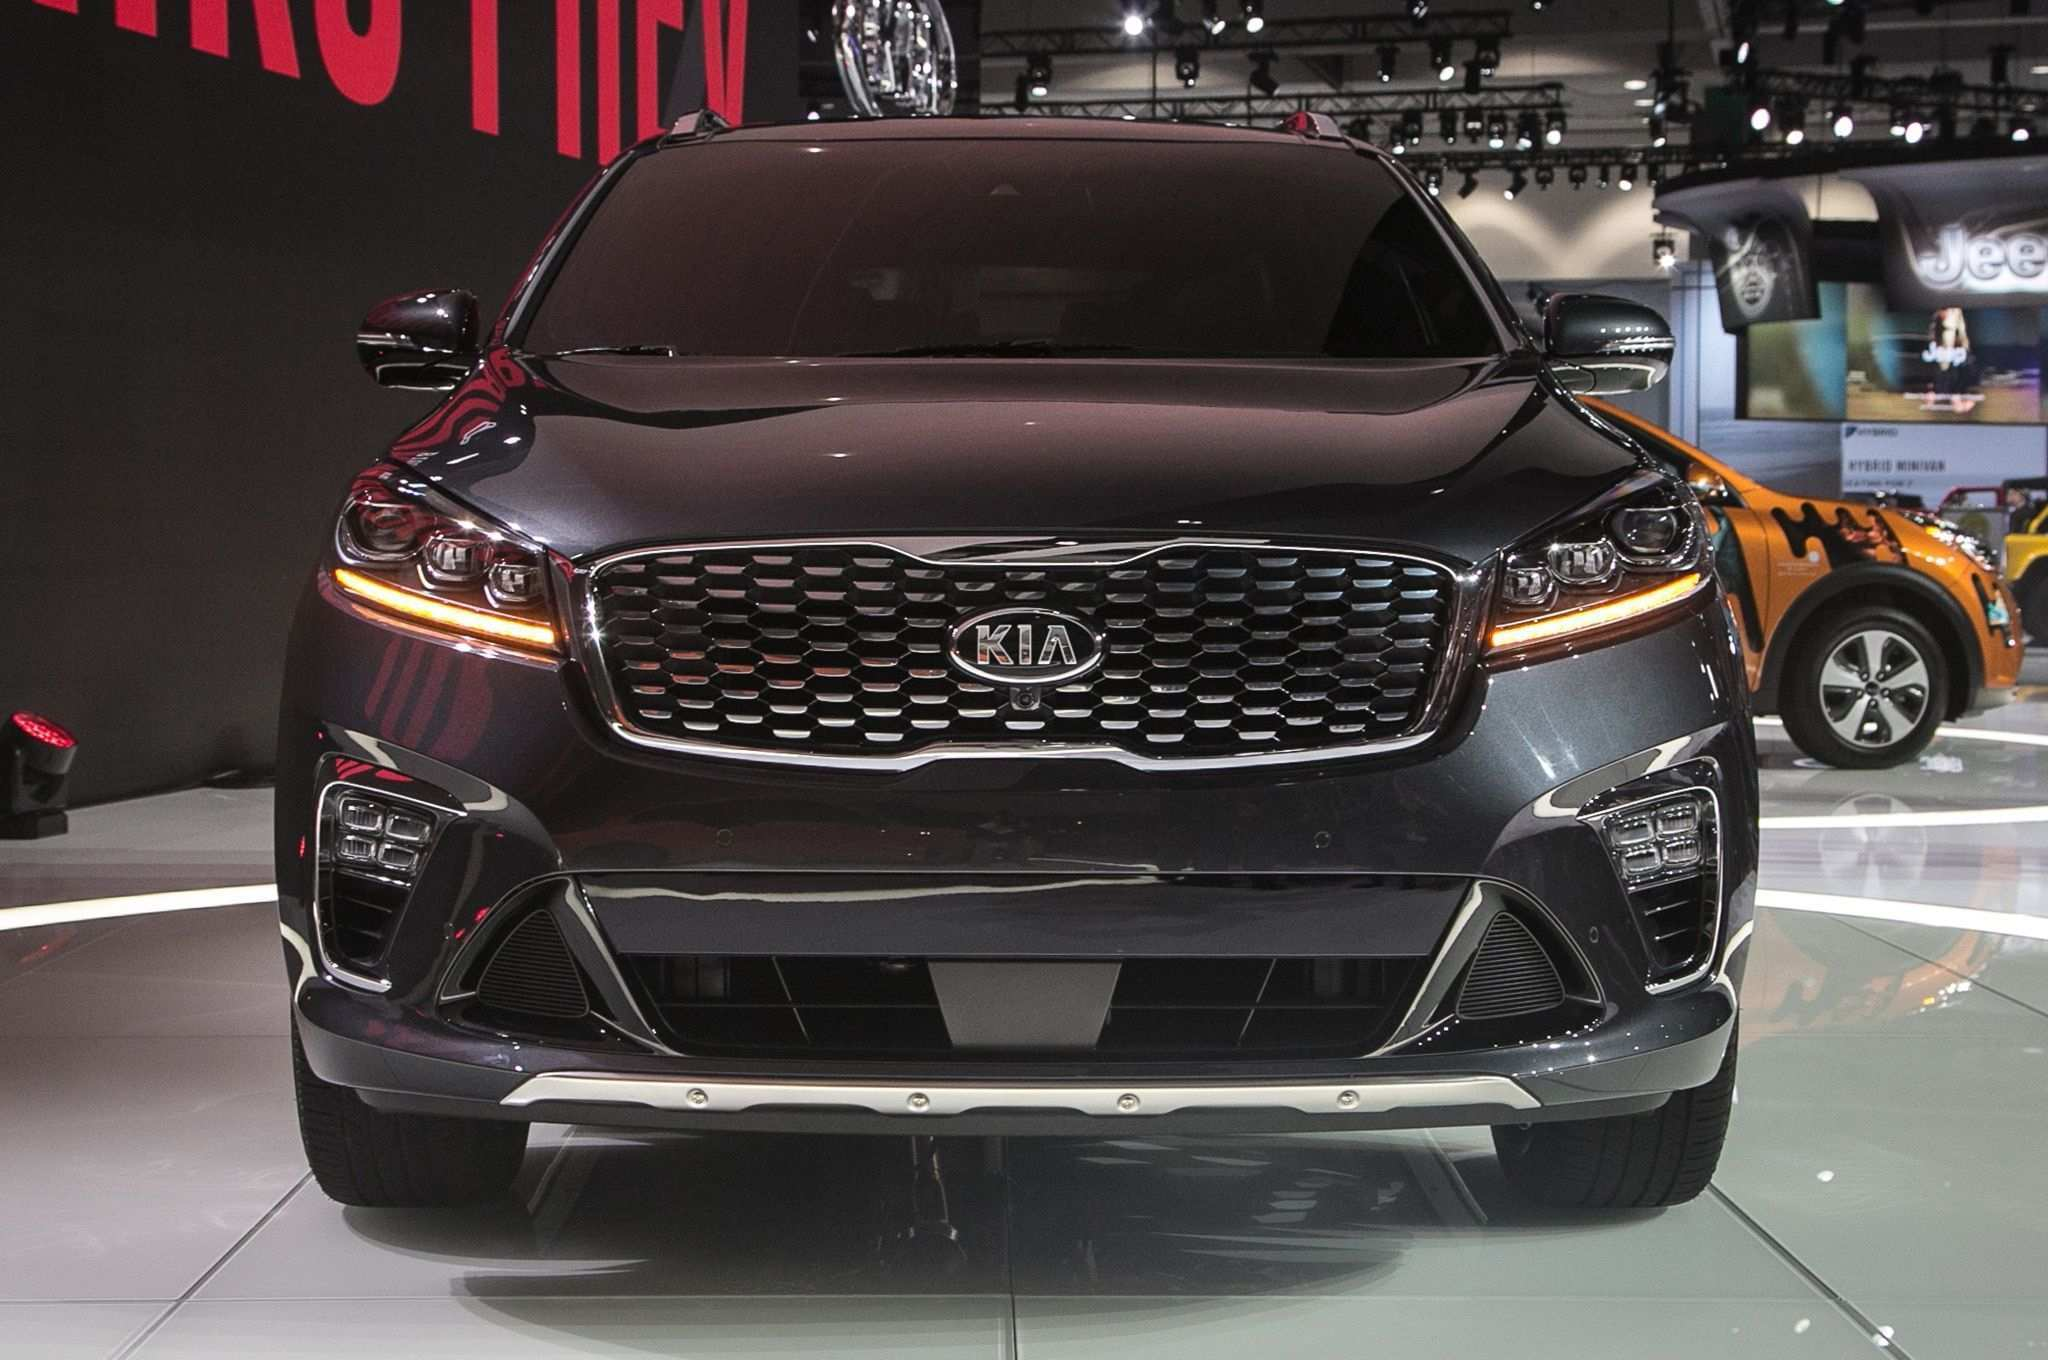 44 Concept of New Kia Vehicles 2019 Exterior And Interior Review History with New Kia Vehicles 2019 Exterior And Interior Review